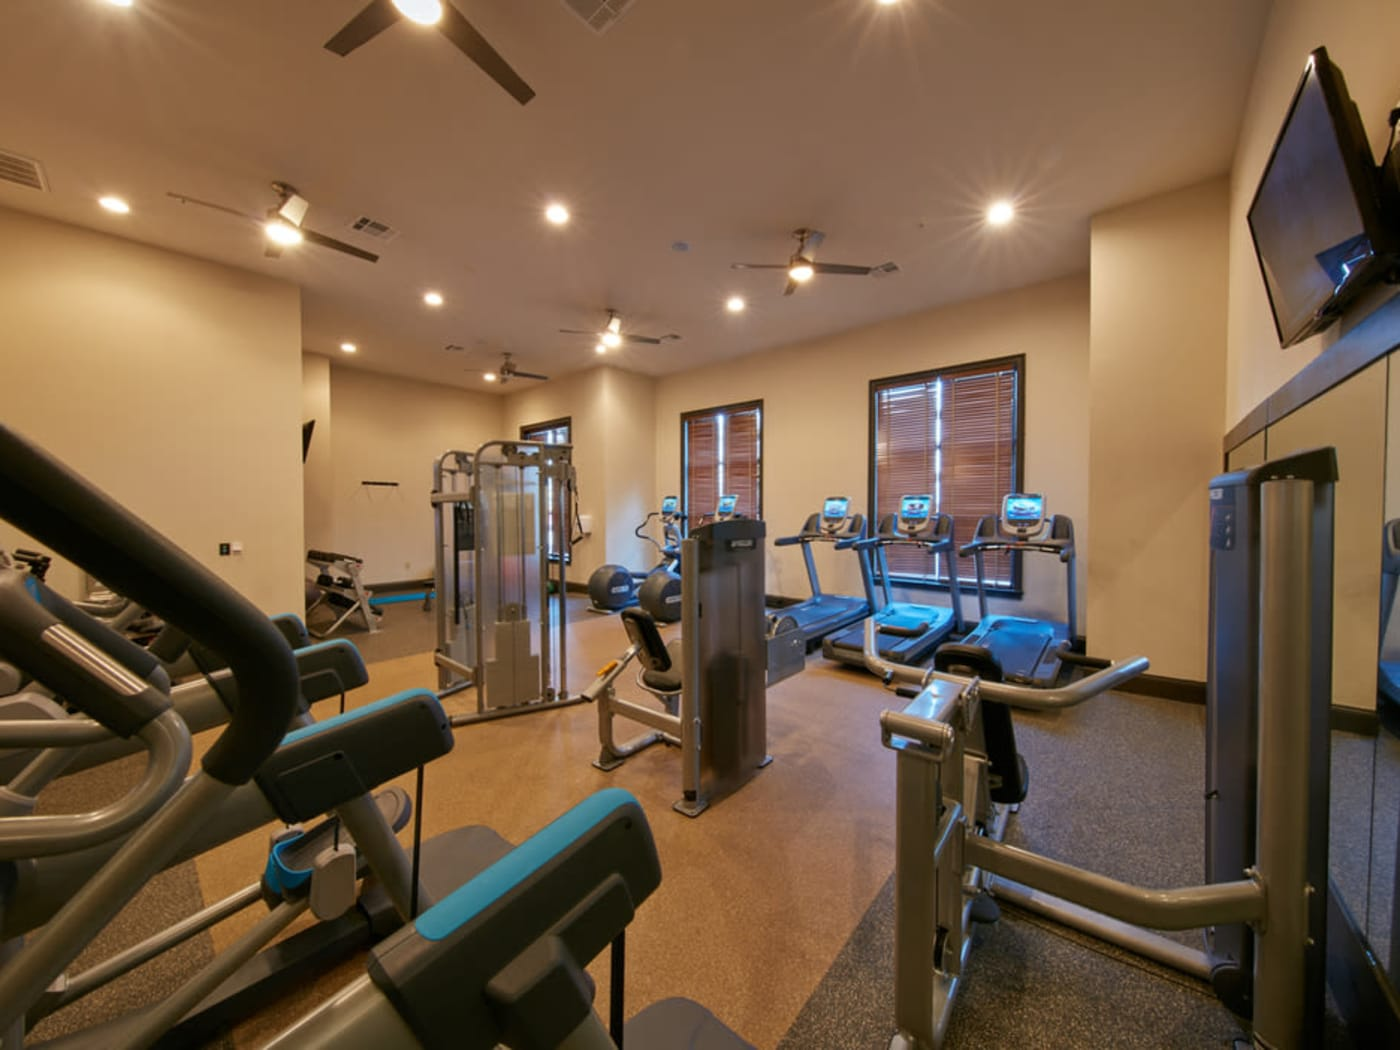 Fitness room at Trifecta Apartments in Louisville, Kentucky.